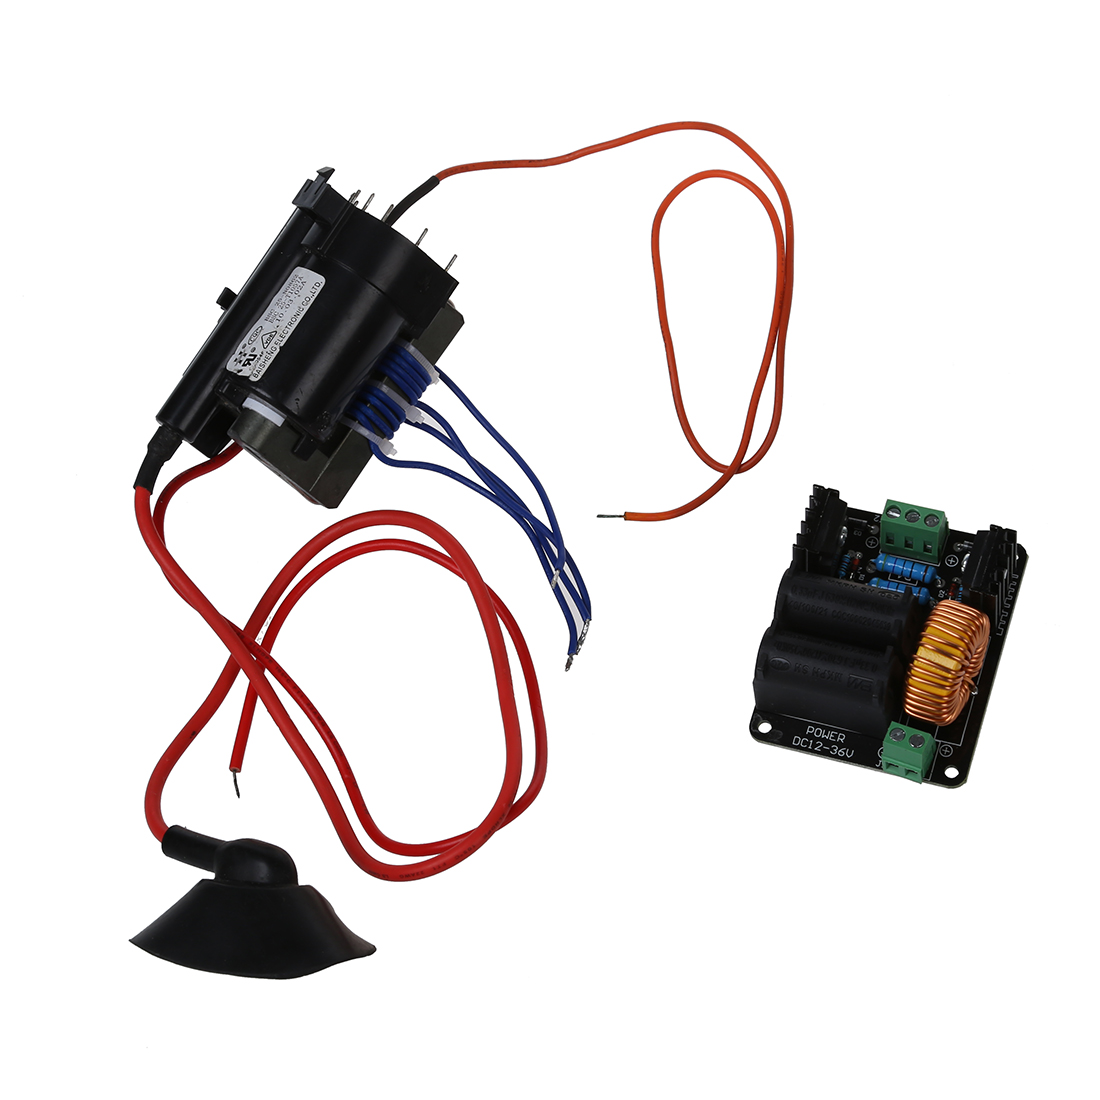 hight resolution of 12v 36v zvs tesla coil flyback driver marx generator jacob s ladder ignition coil in signal generators from tools on aliexpress com alibaba group